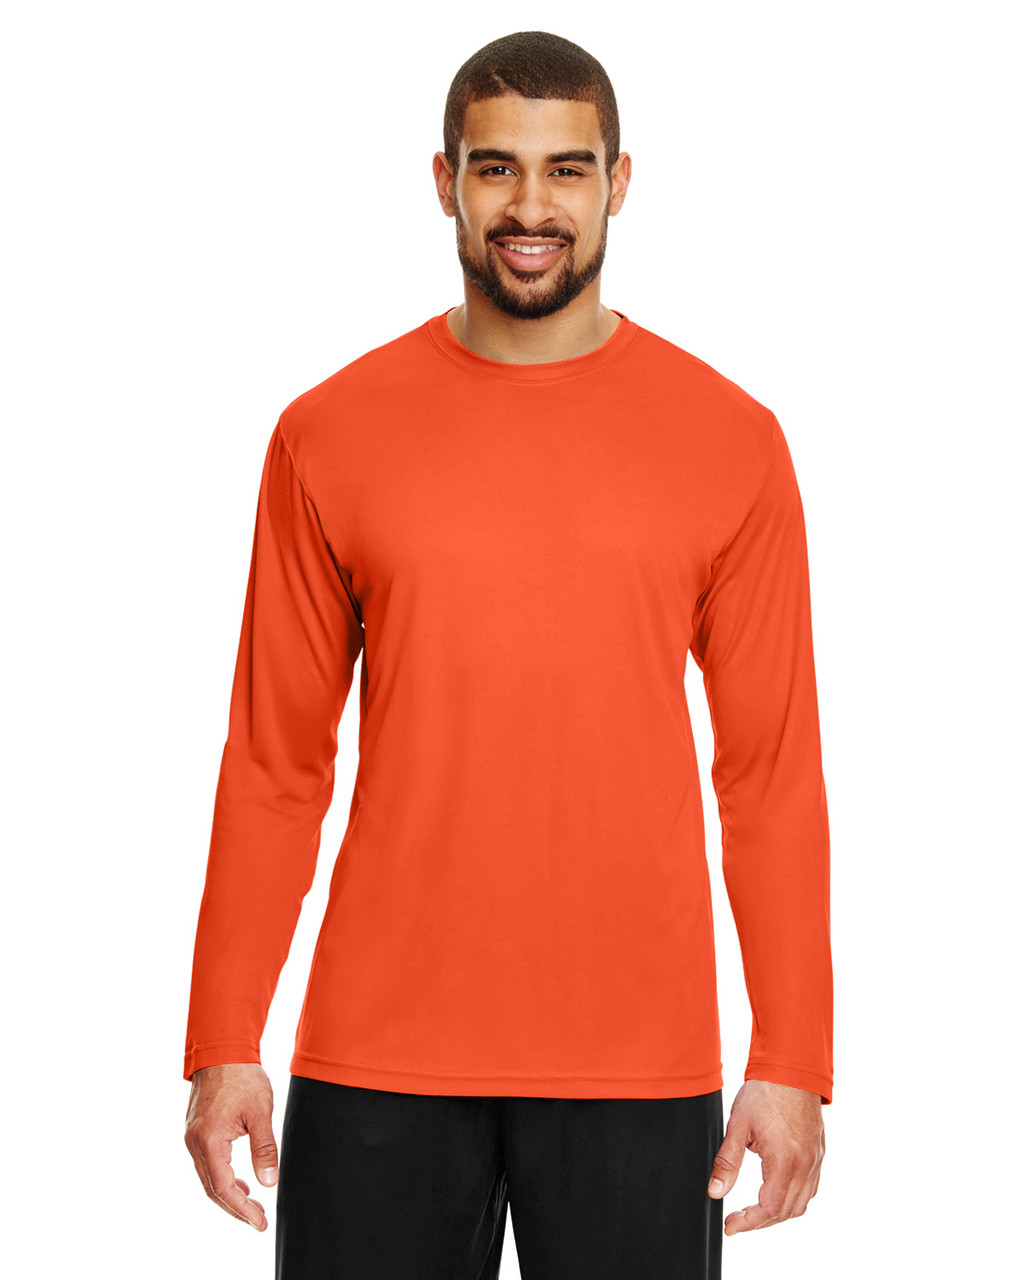 Sport Orange - TT11L Team 365 Men's Zone Performance Long Sleeve T-Shirt | BlankClothing.ca